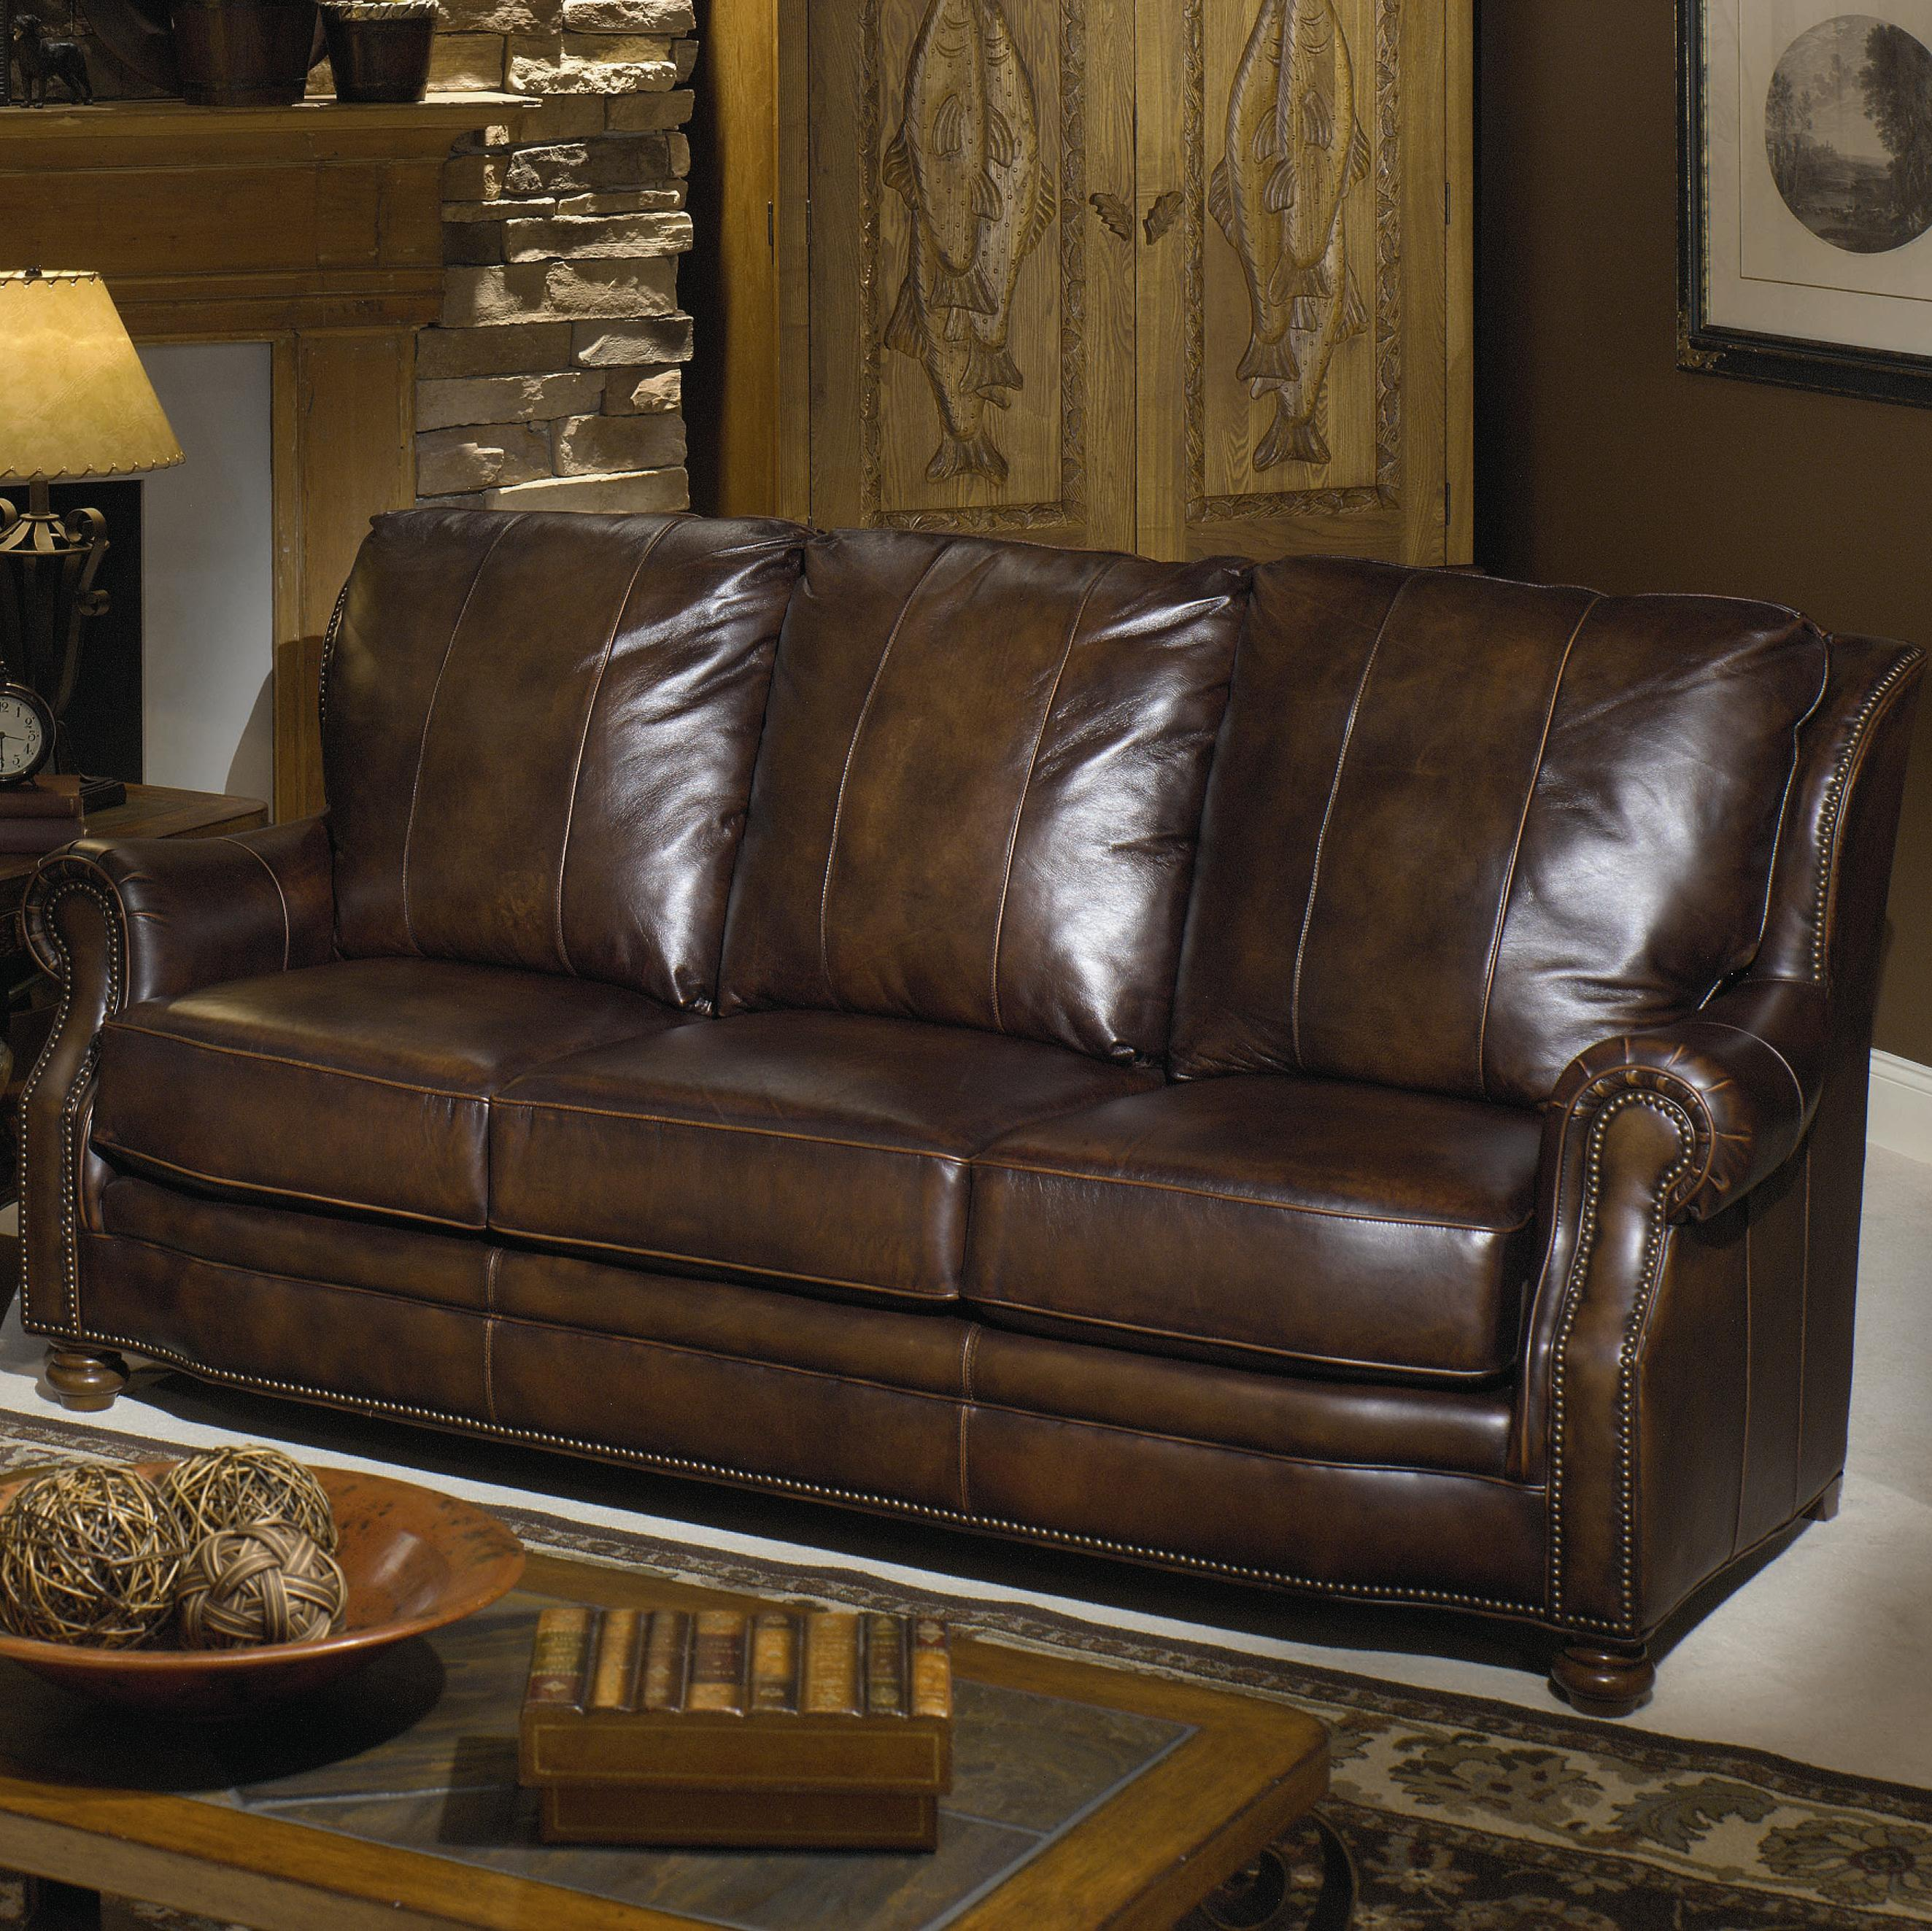 Craftmaster L785 Leather Sofa with Decorative Nailhead Trim FMG